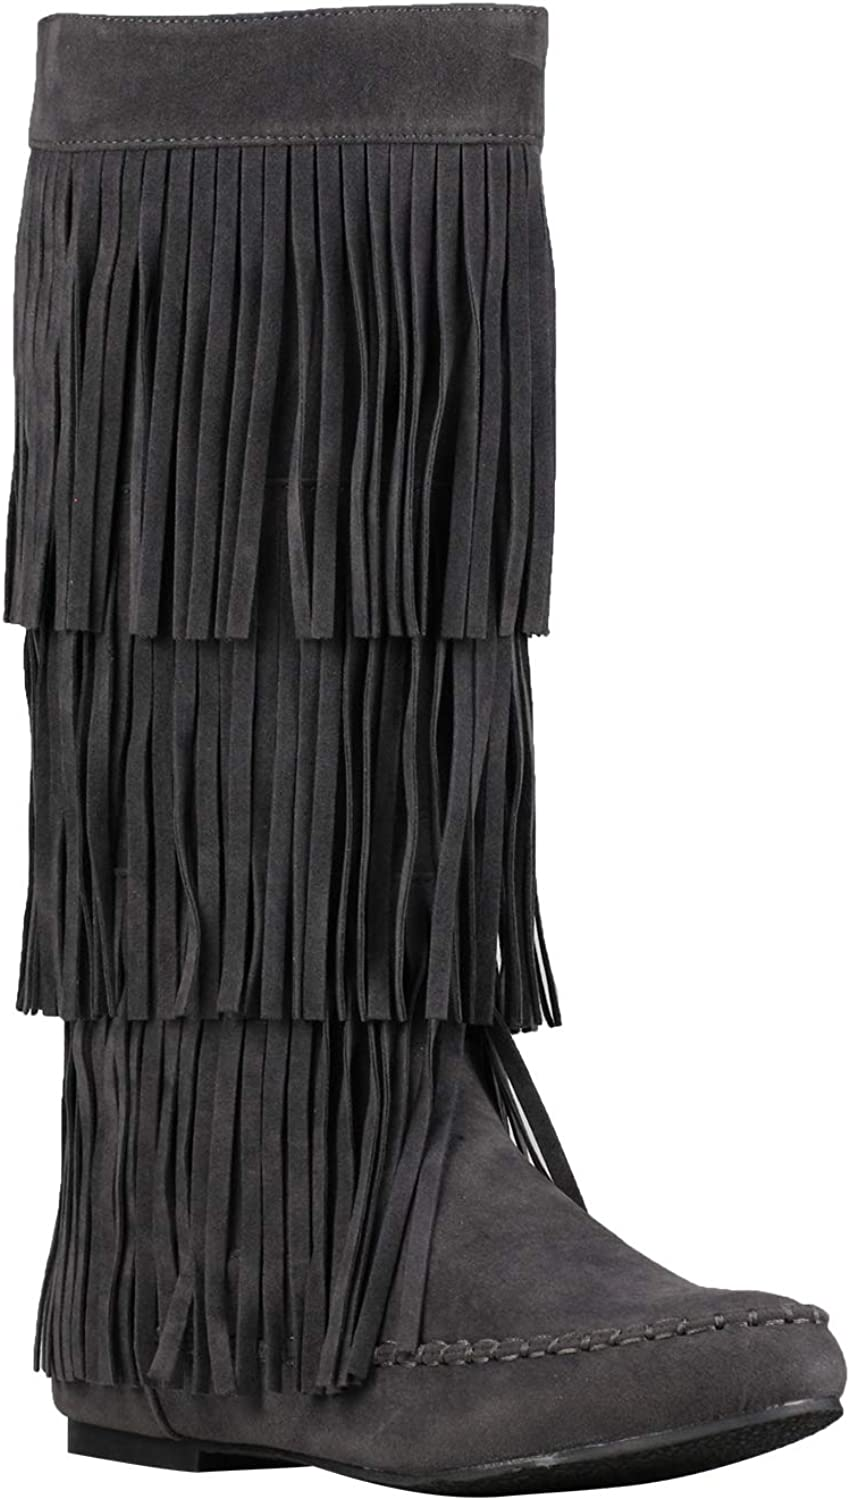 Details about  /New Winter Fashion Women/'s Round Toe Tassle Flats Heels Knee High Boots shoes